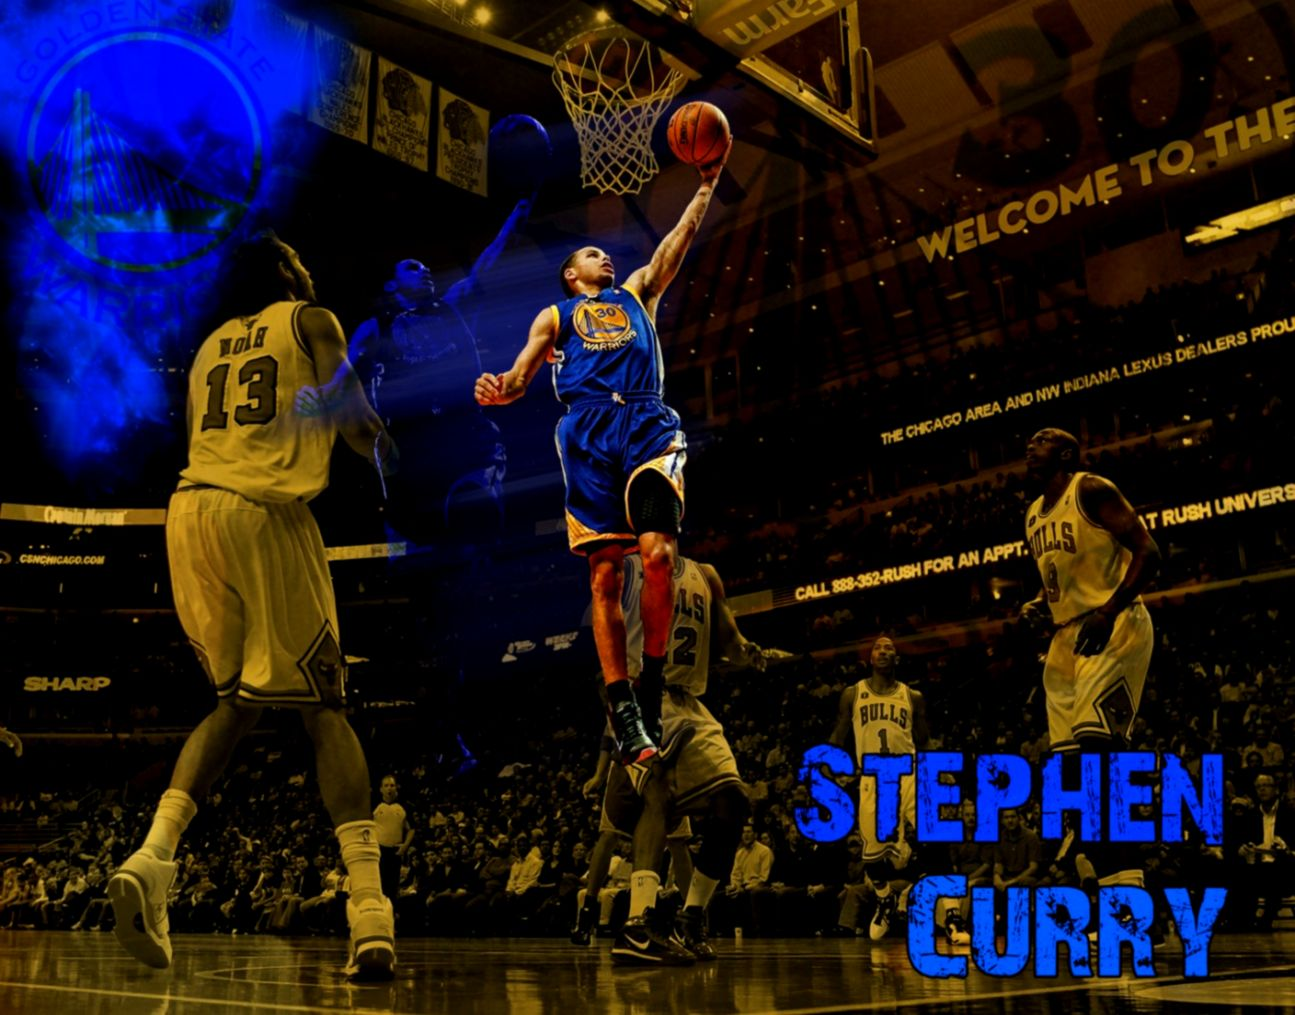 Stephon Curry Wallpaper Copy Wallpapers